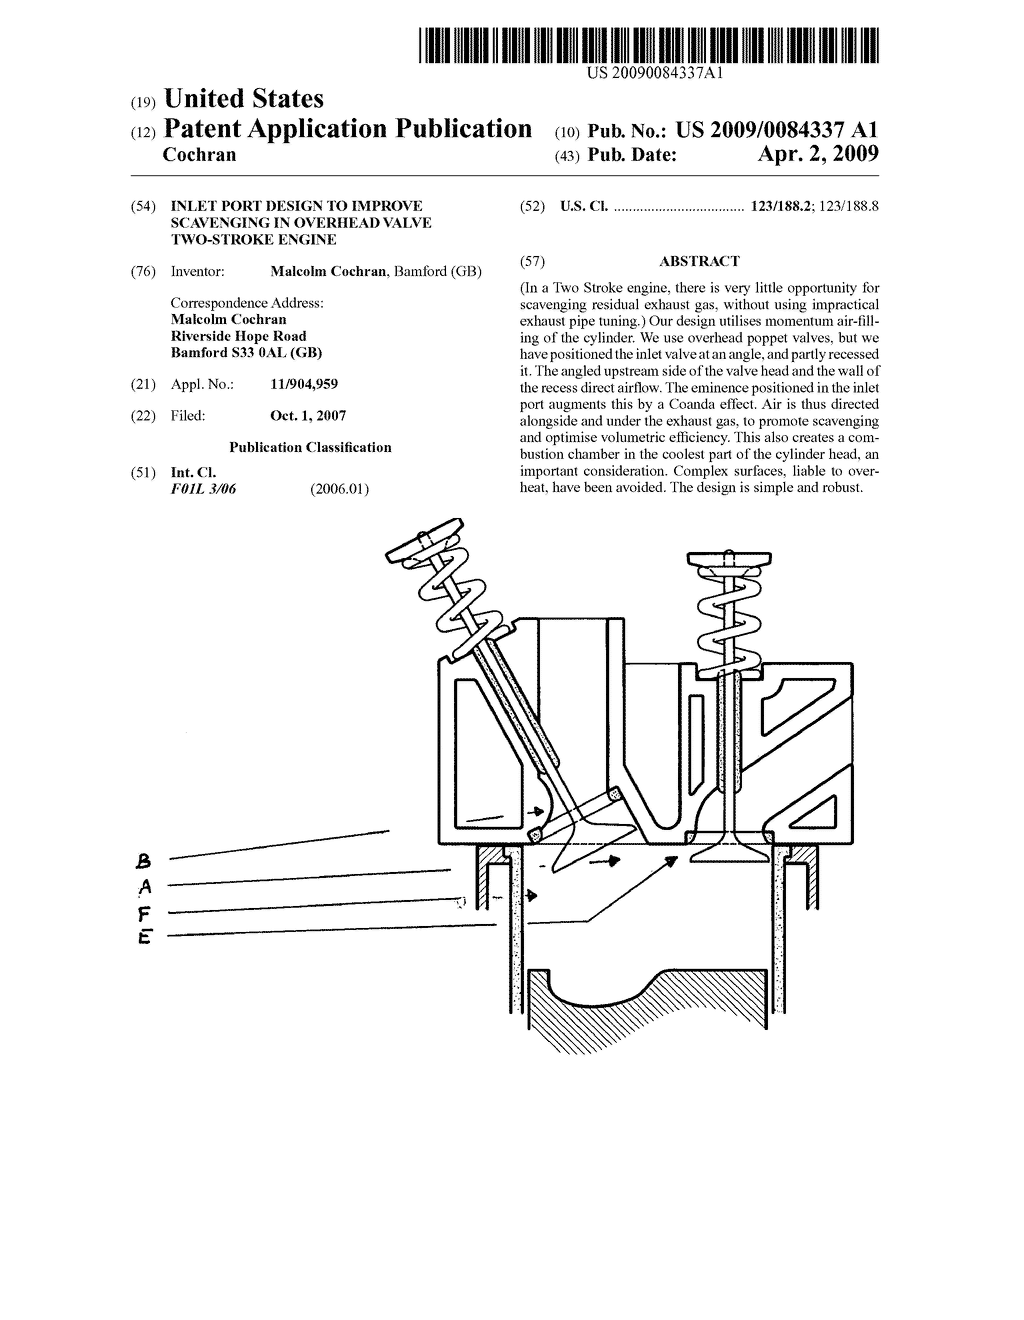 Two Stroke Engine With Valve Valves Diagram Inlet Port Design To Improve Scavenging In Overhead Schematic And Image